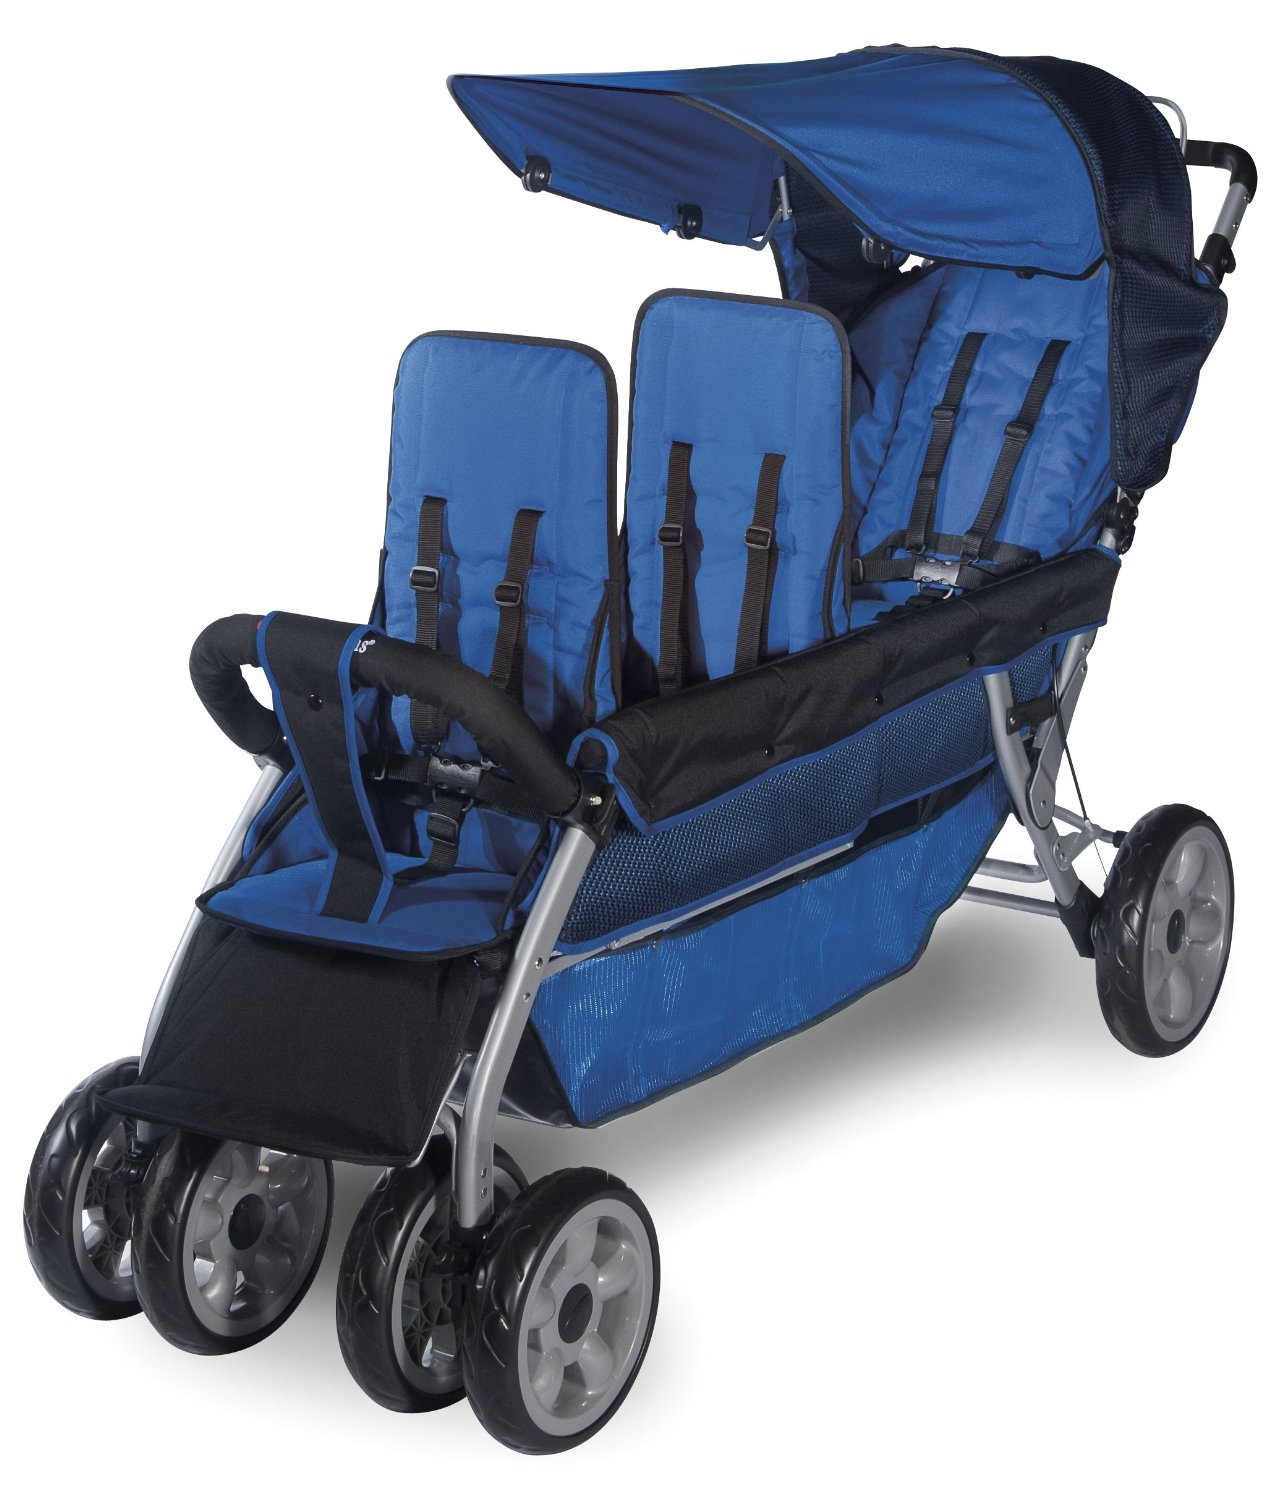 Foundations Worldwide Foundations Regette Blue 3 Passenger Stroller